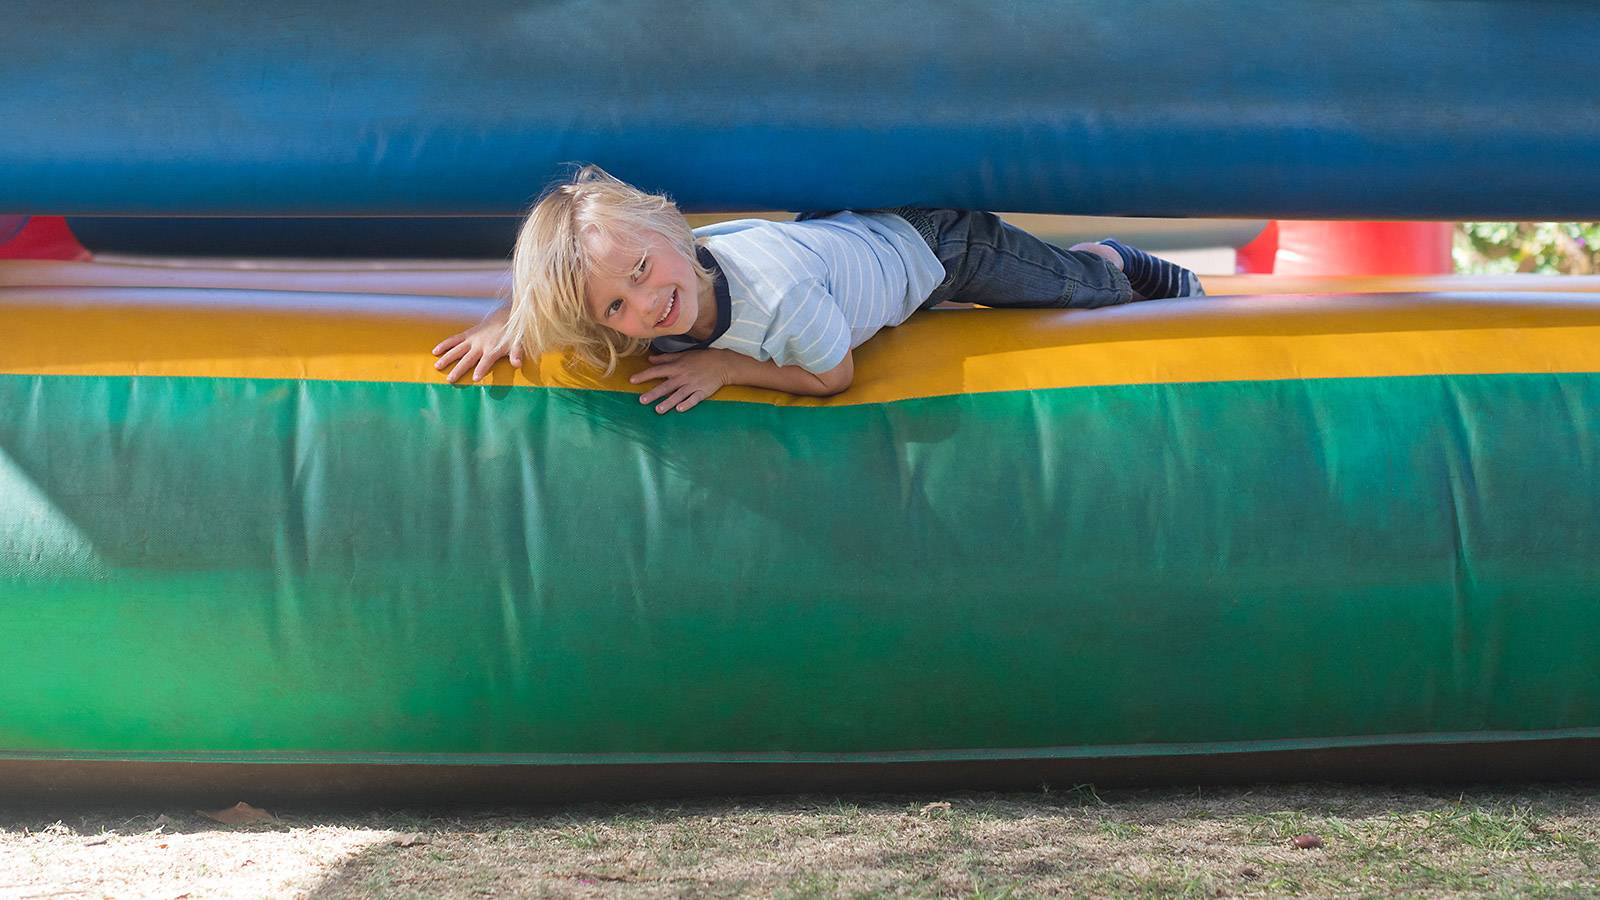 Tots-Bouncy-castles-3-important-tips-to-ensure-your-child's-safety-1